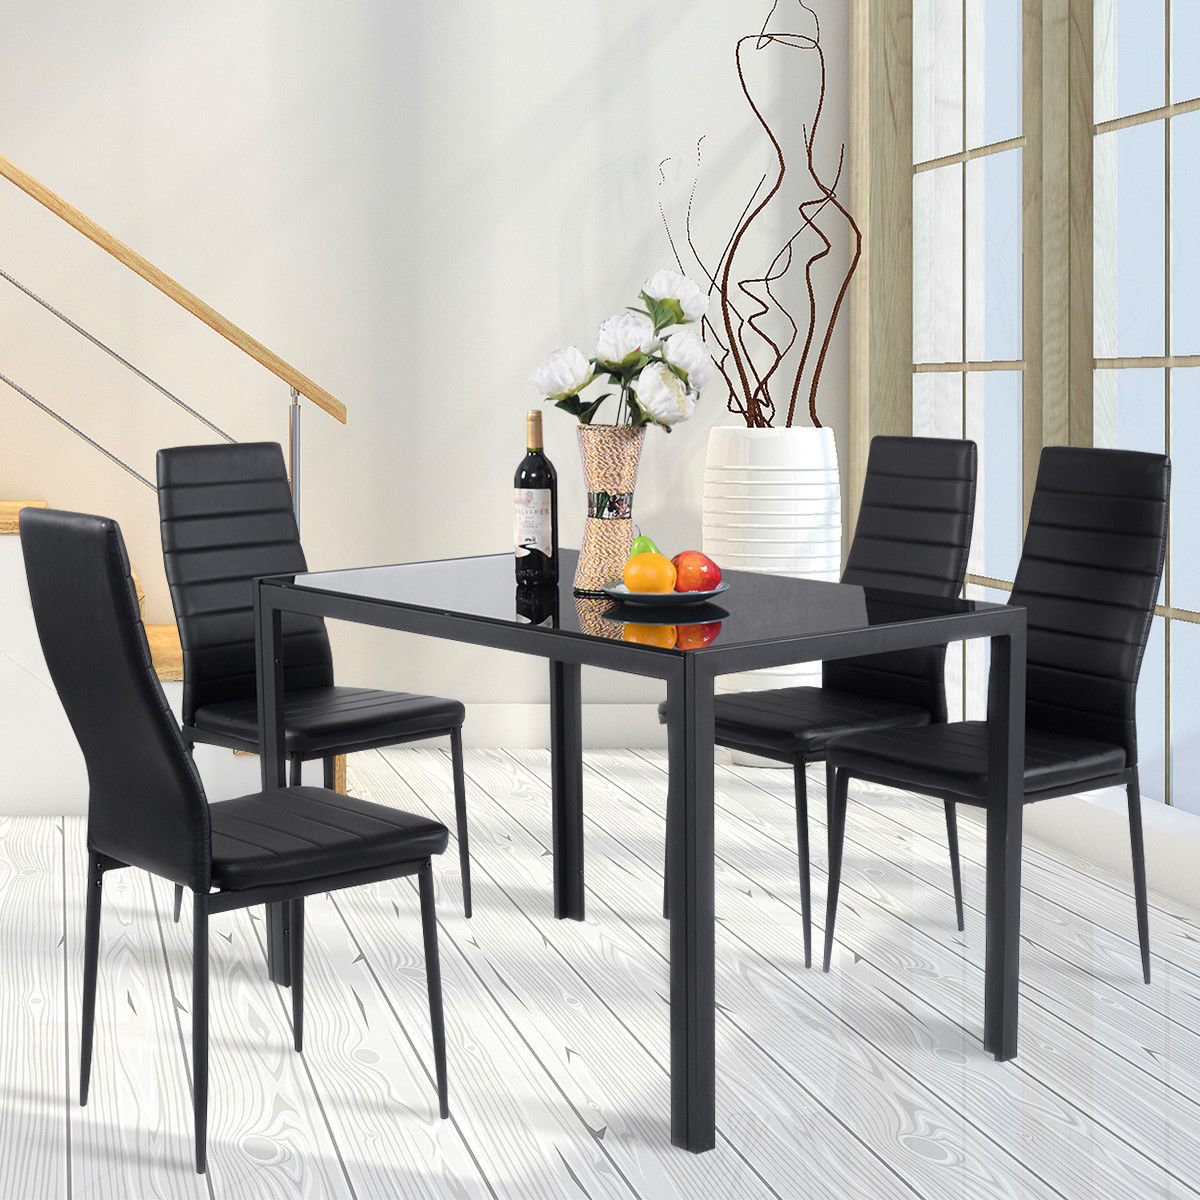 Edgeworth 5 Piece Dining Set Regarding Best And Newest Linette 5 Piece Dining Table Sets (View 3 of 20)